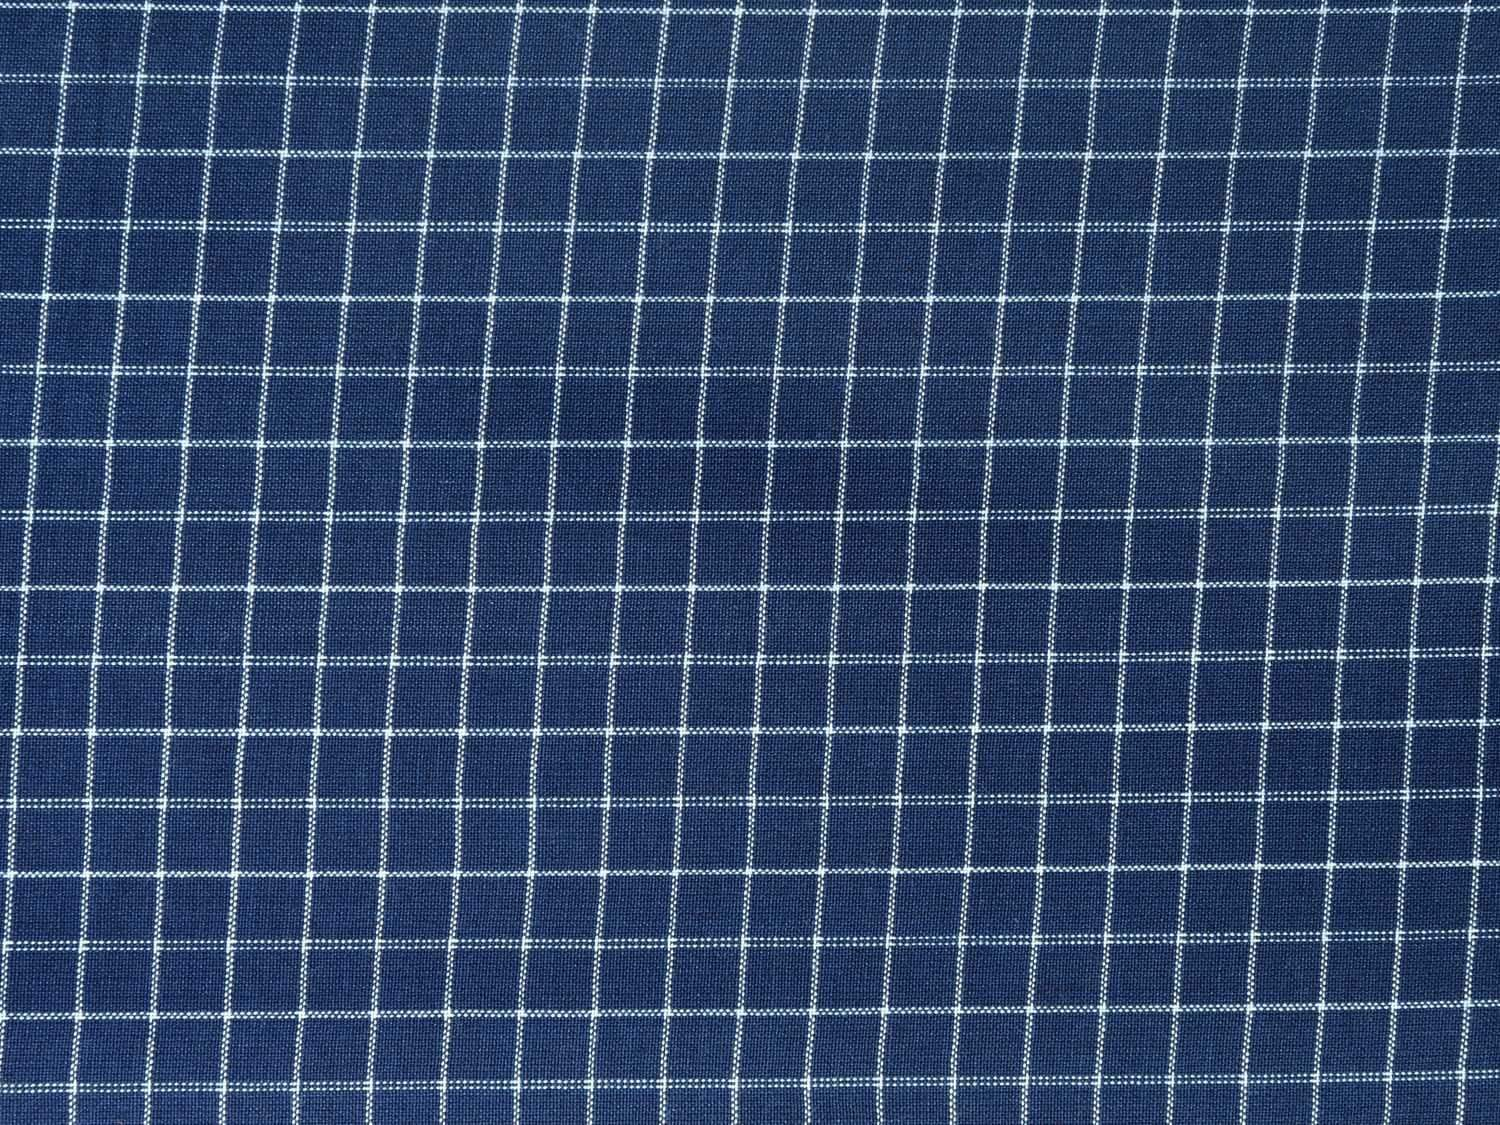 Blue Cotton Handloom Fabric Material with Small Checks Design f0148